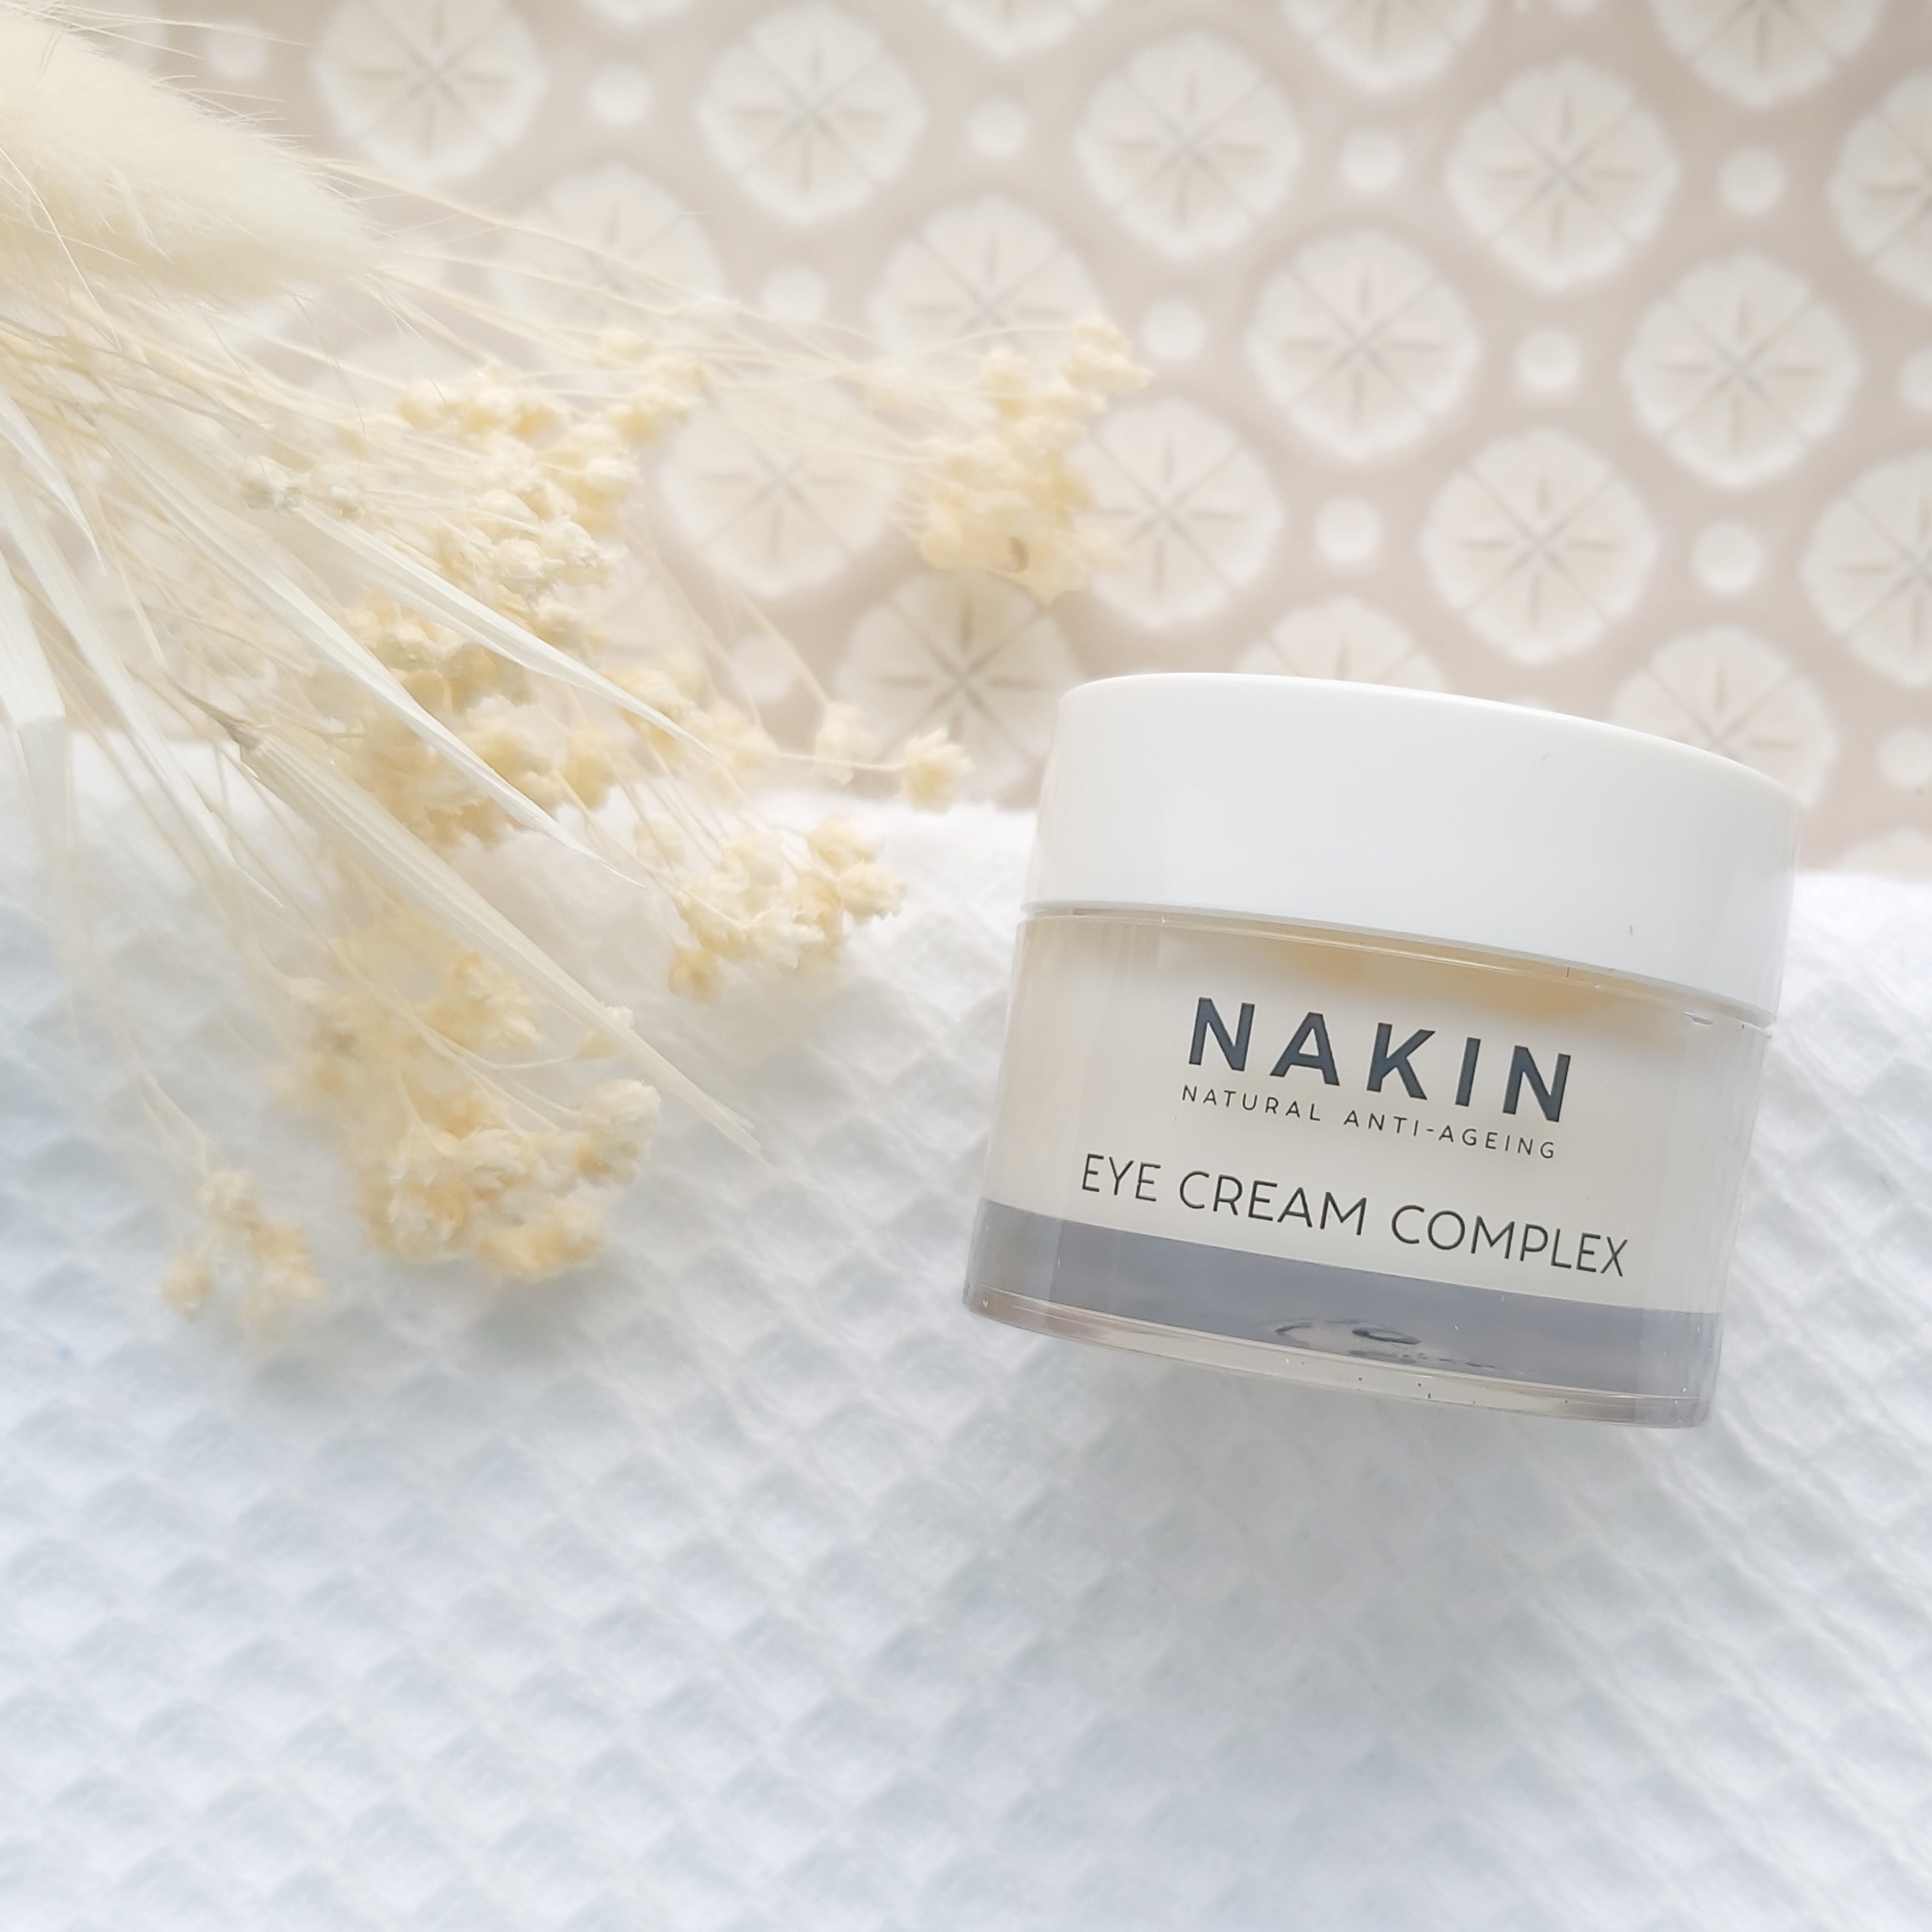 Nakin Skincare Eye Cream Complex featured in The Natural Beauty Box May 2021 on a patterned plate, waffle white towel and natural foliage - Review by Beauty Folio